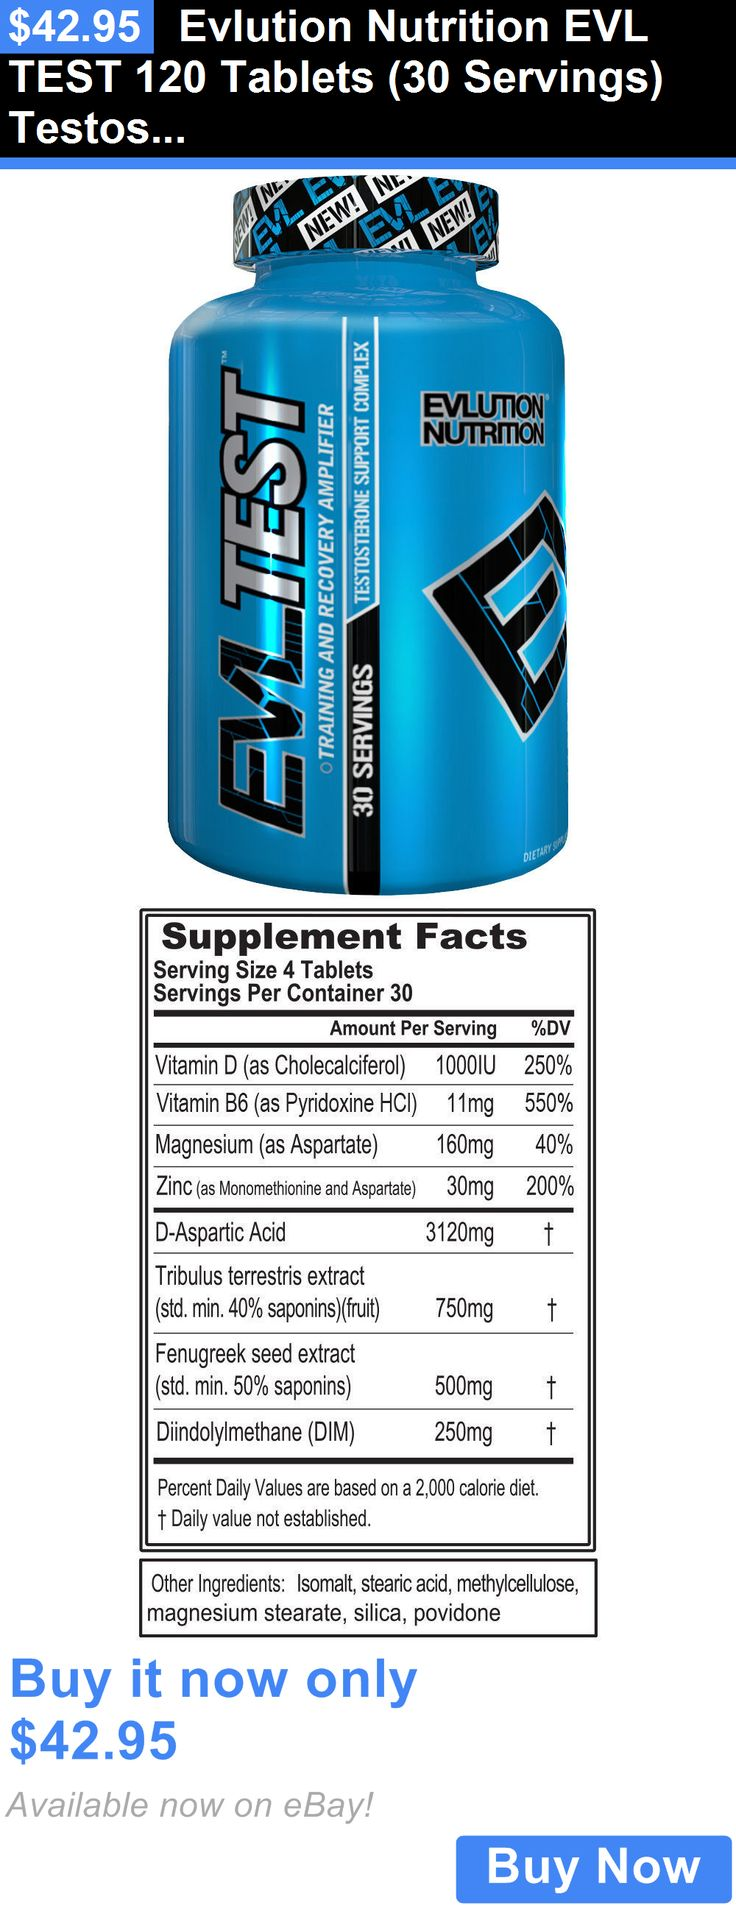 Health And Fitness: Evlution Nutrition Evl Test 120 Tablets (30 Servings) Testosterone Booster - New BUY IT NOW ONLY: $42.95